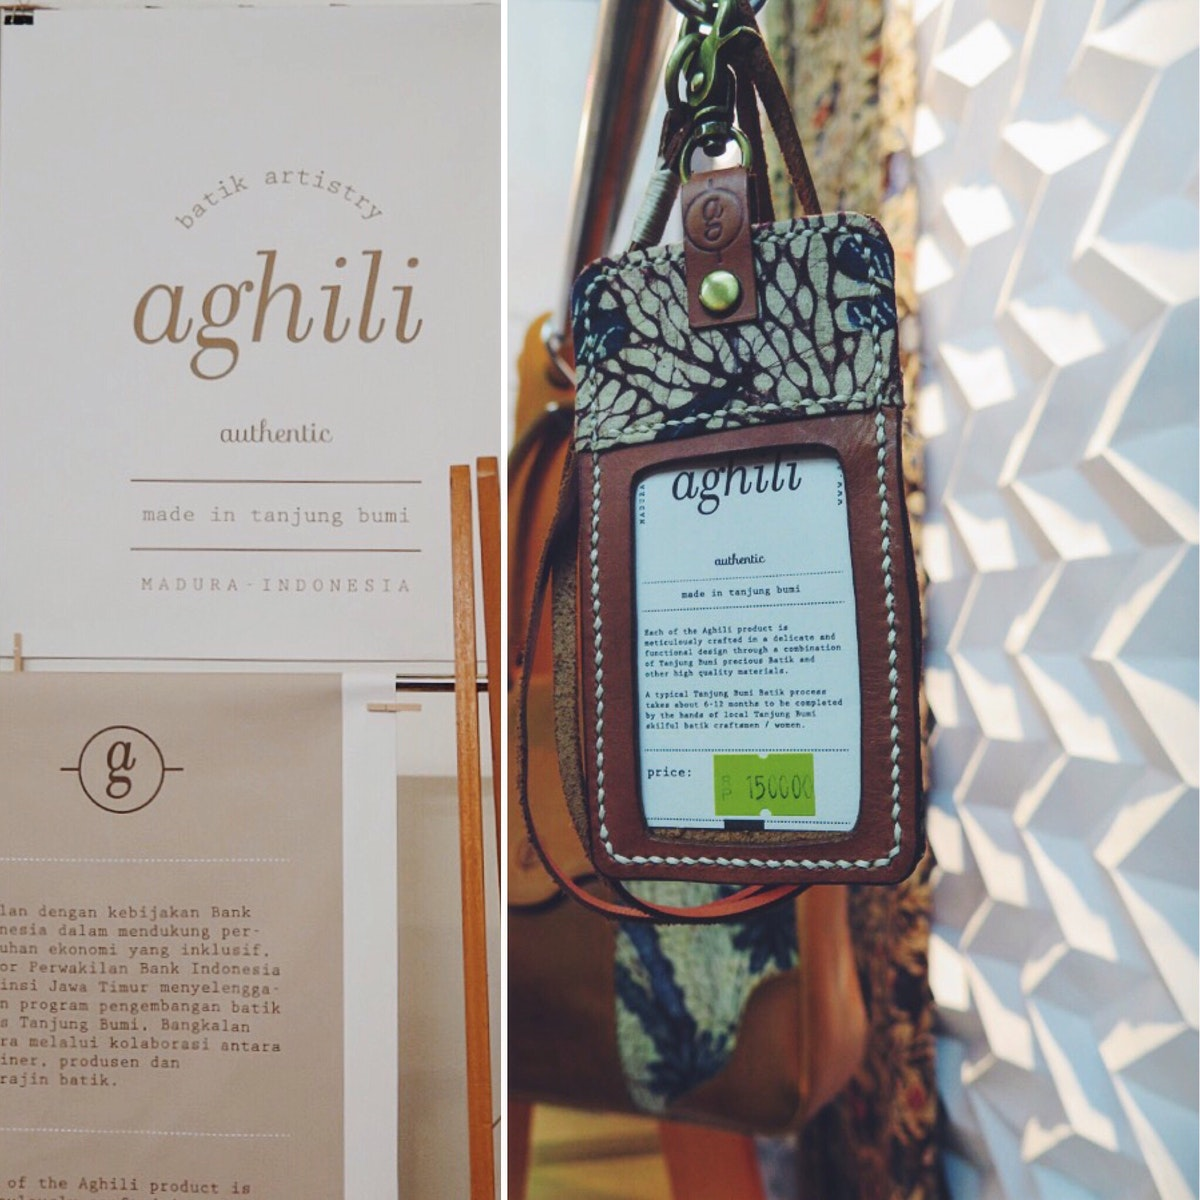 Aghili booth at Inacraft 2016